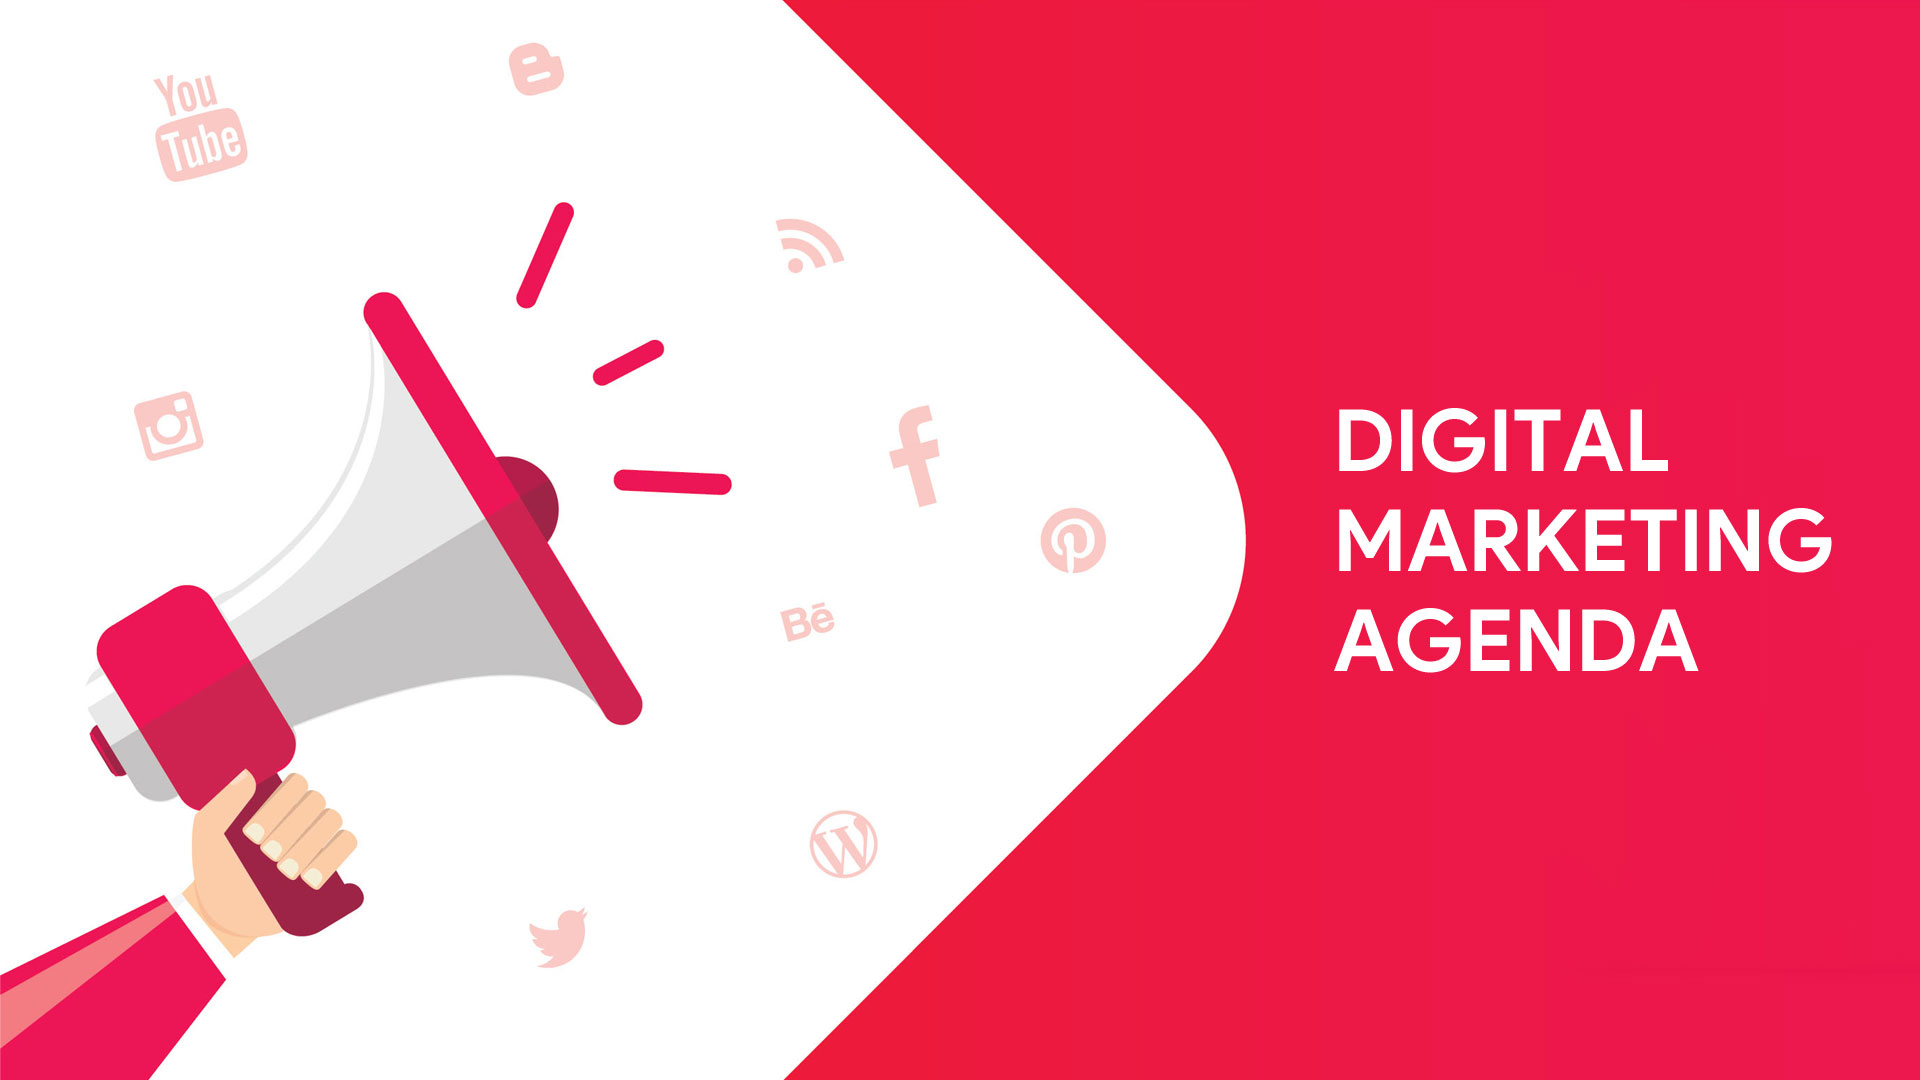 Digital Marketing Agenda